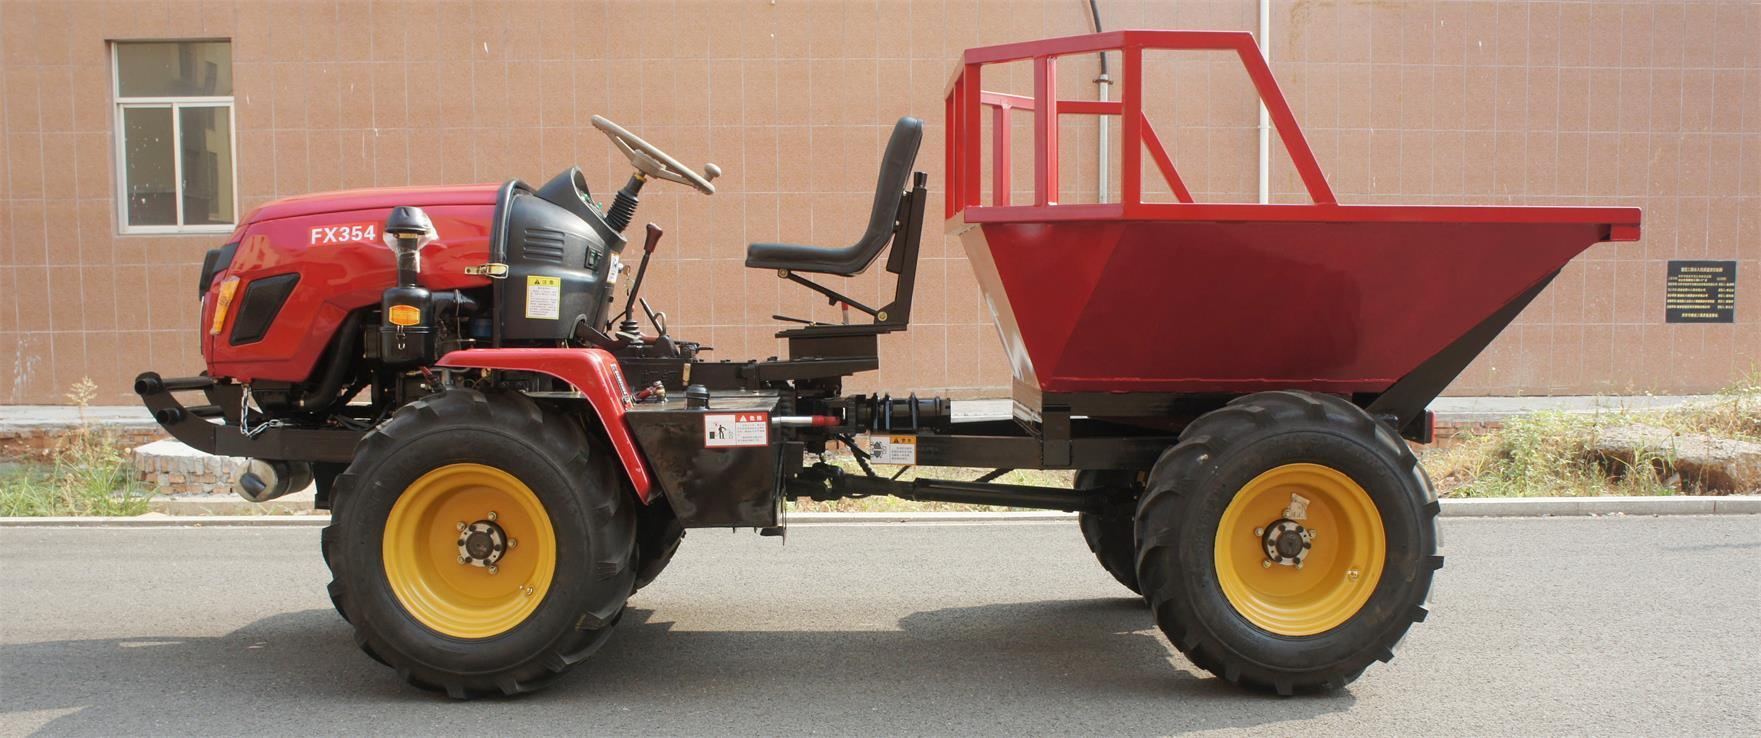 4WD Triangular Tracked transporter Tractor 11